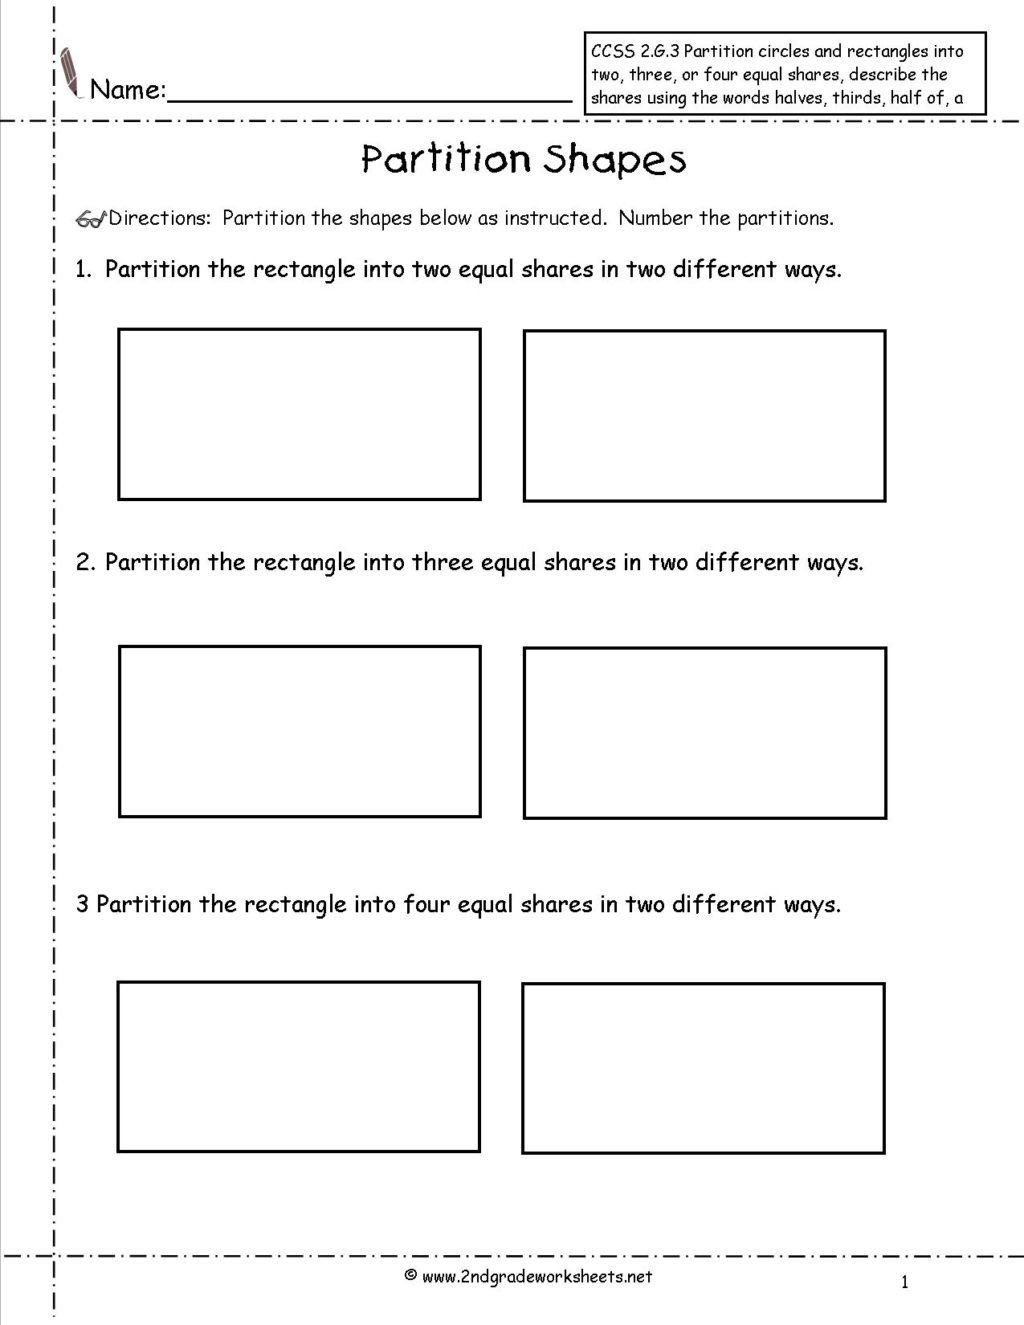 Geometric Shapes Worksheets 2nd Grade Worksheet 2nd Grade Geometry Worksheets Ccss G Partition